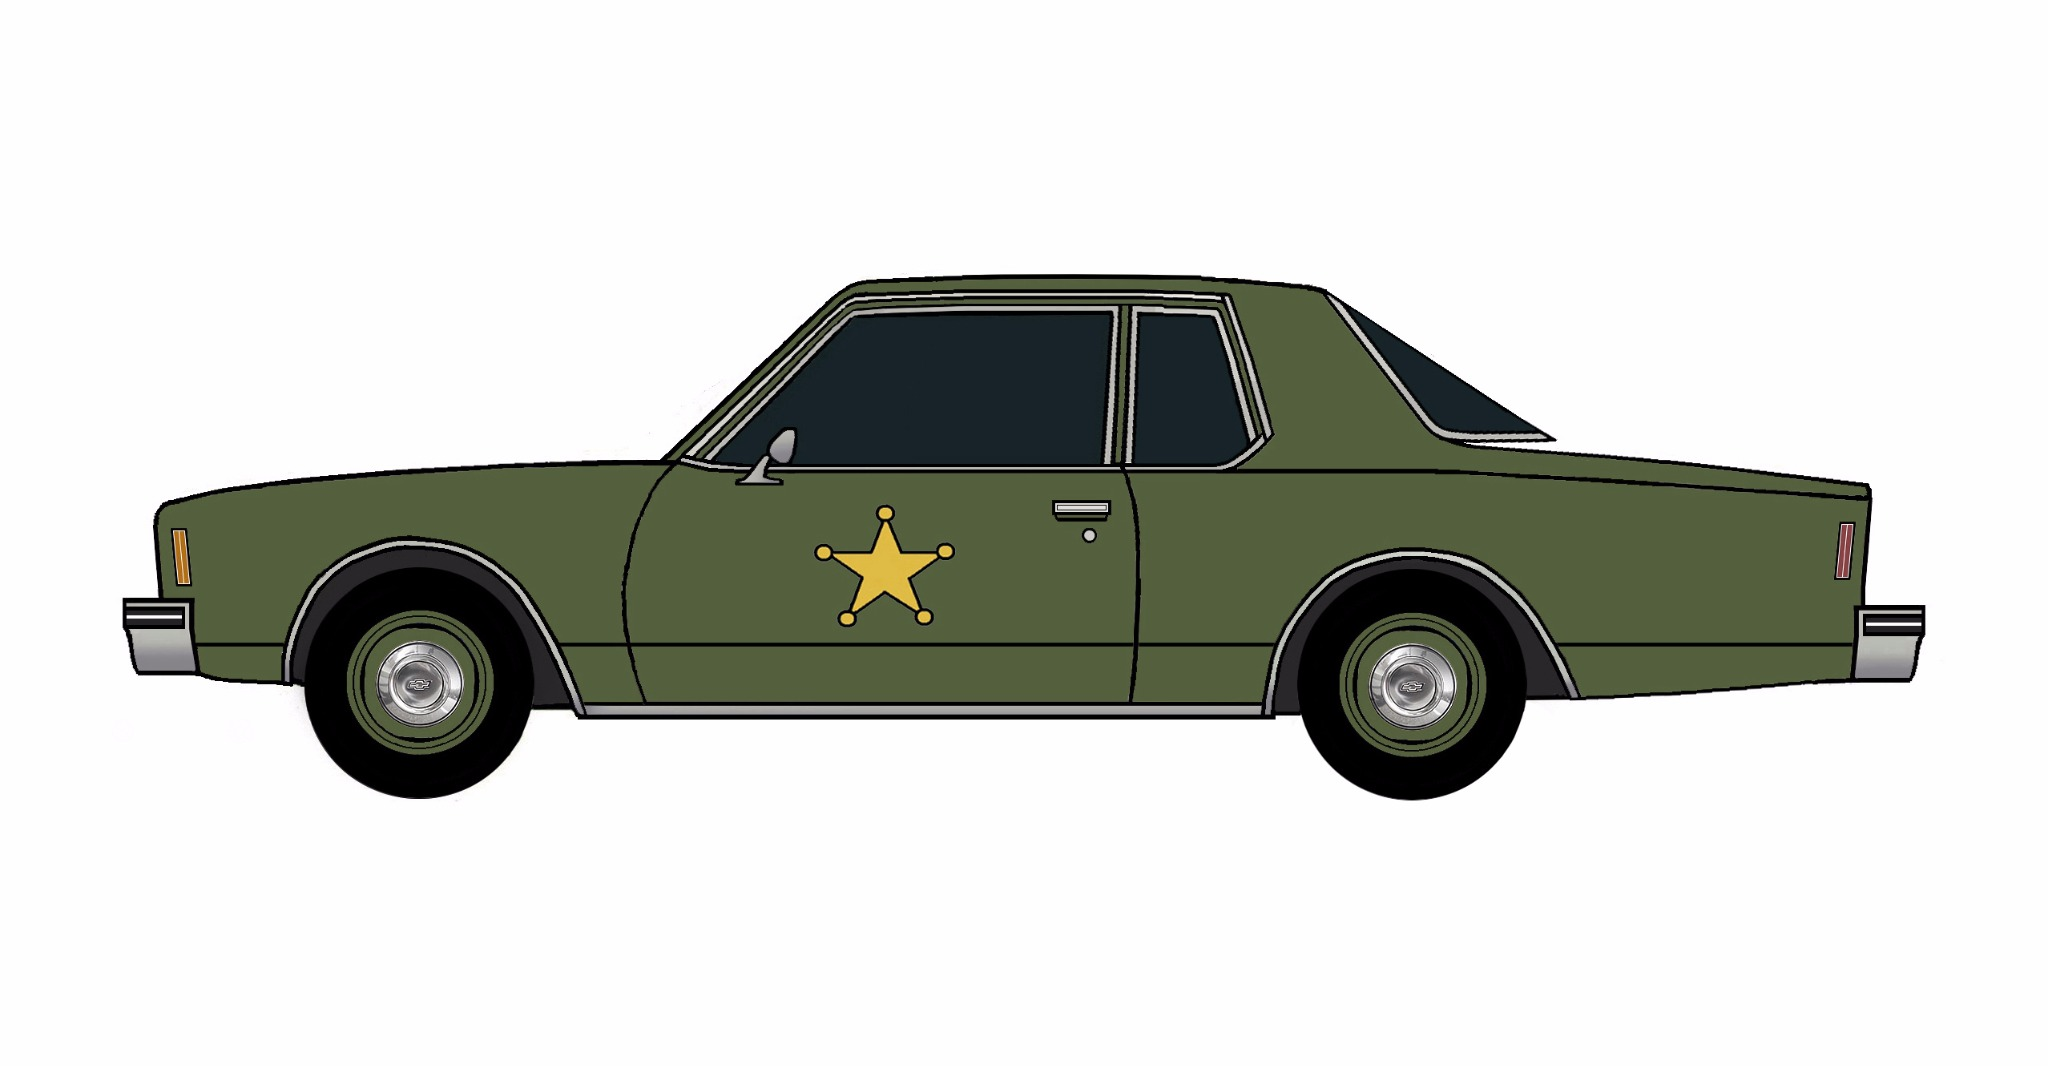 1977 Chevy Impala Police Coupe ARMY GREEN